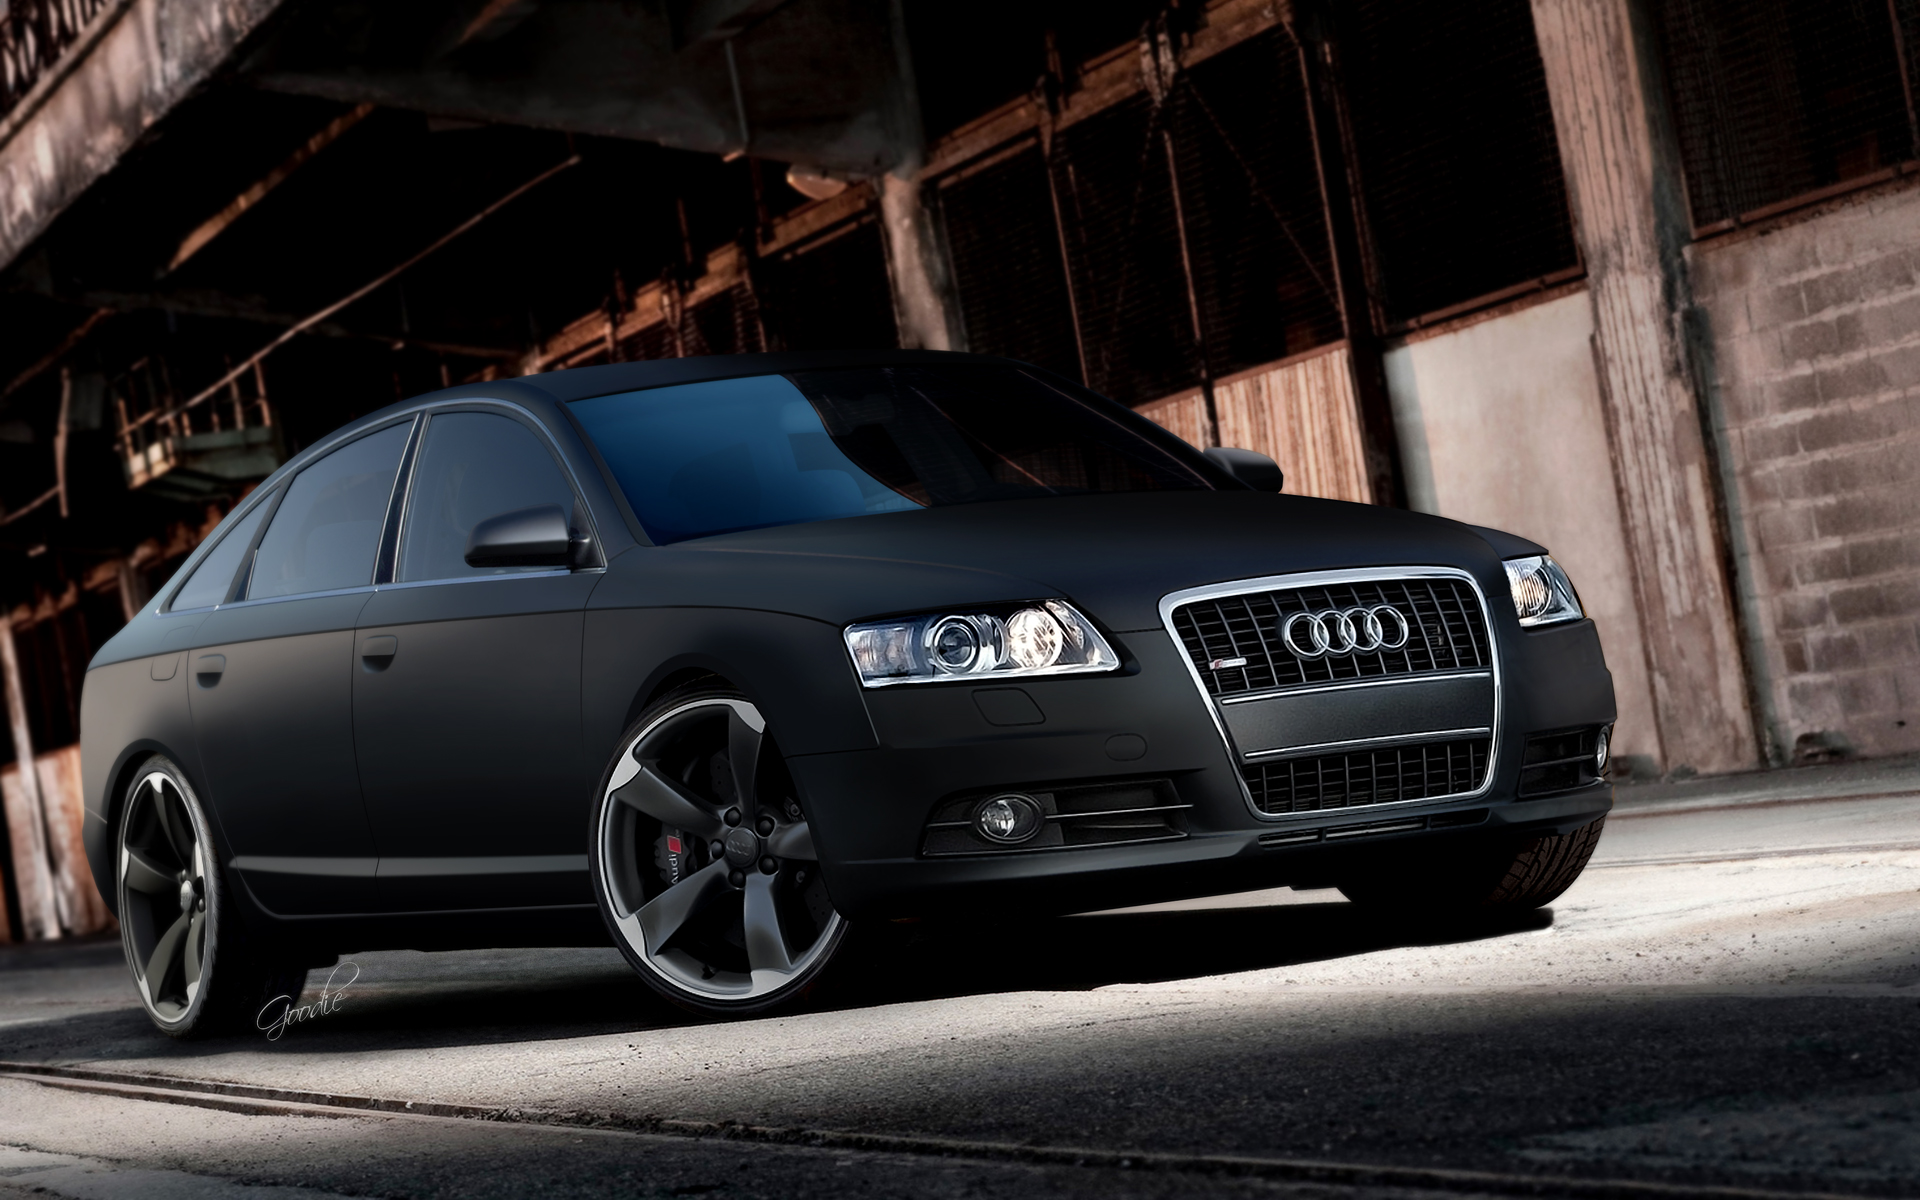 Audi A6 S Line HD Wallpapers Hintergrnde 1920x1200